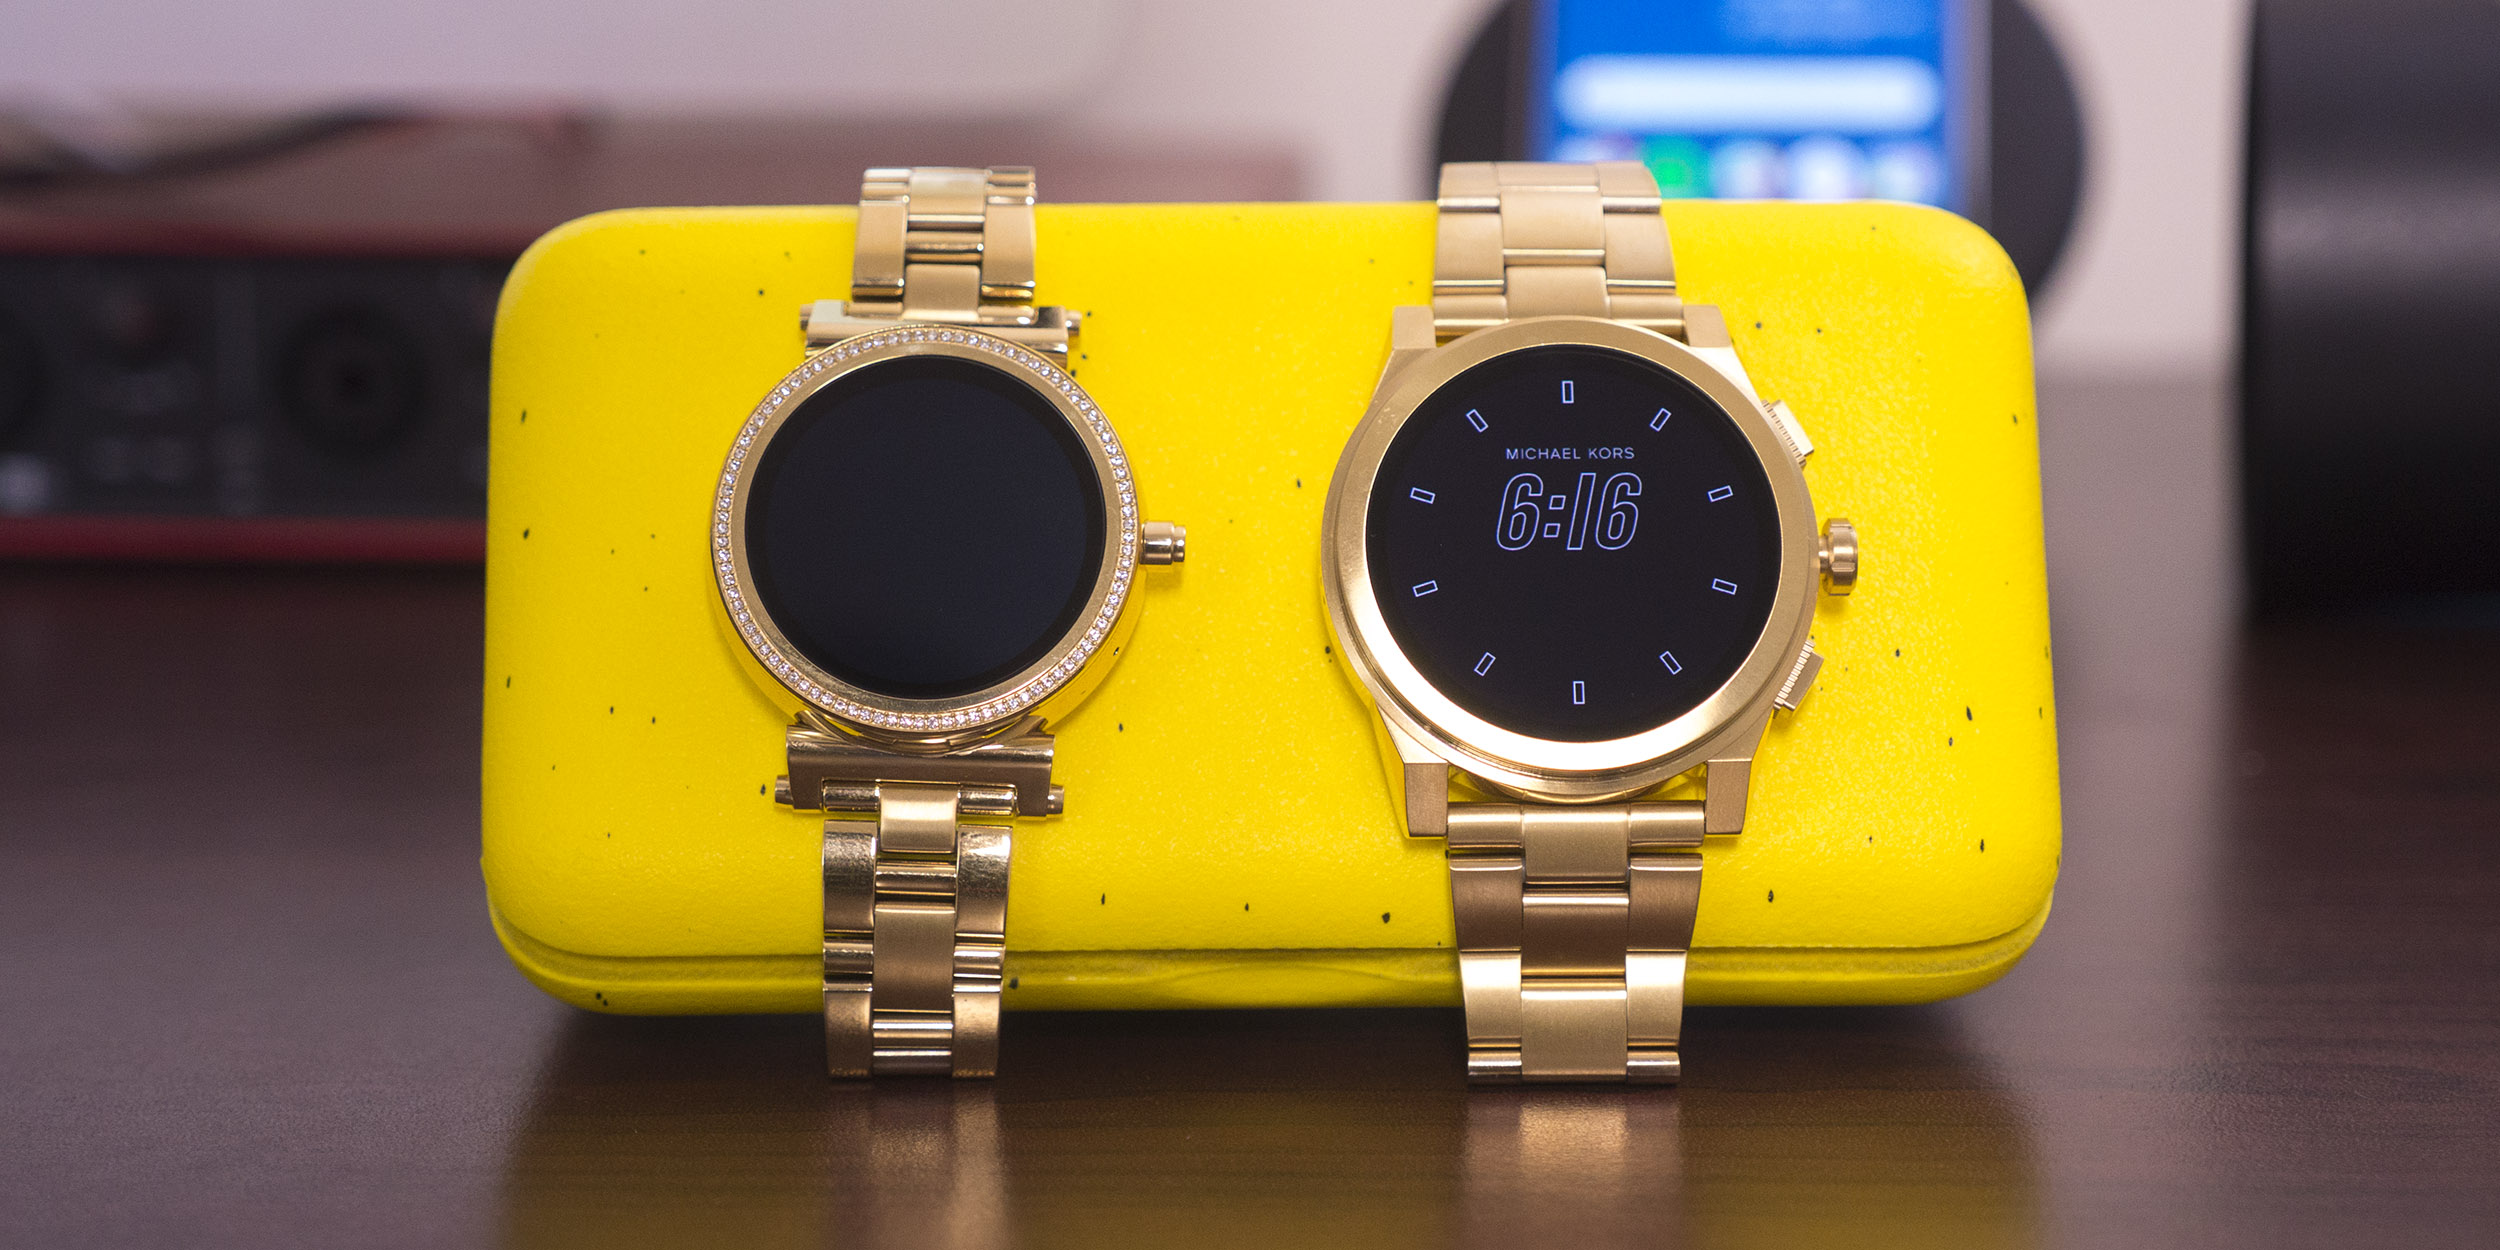 Review: Michael Kors offers 2 beautiful options for Android